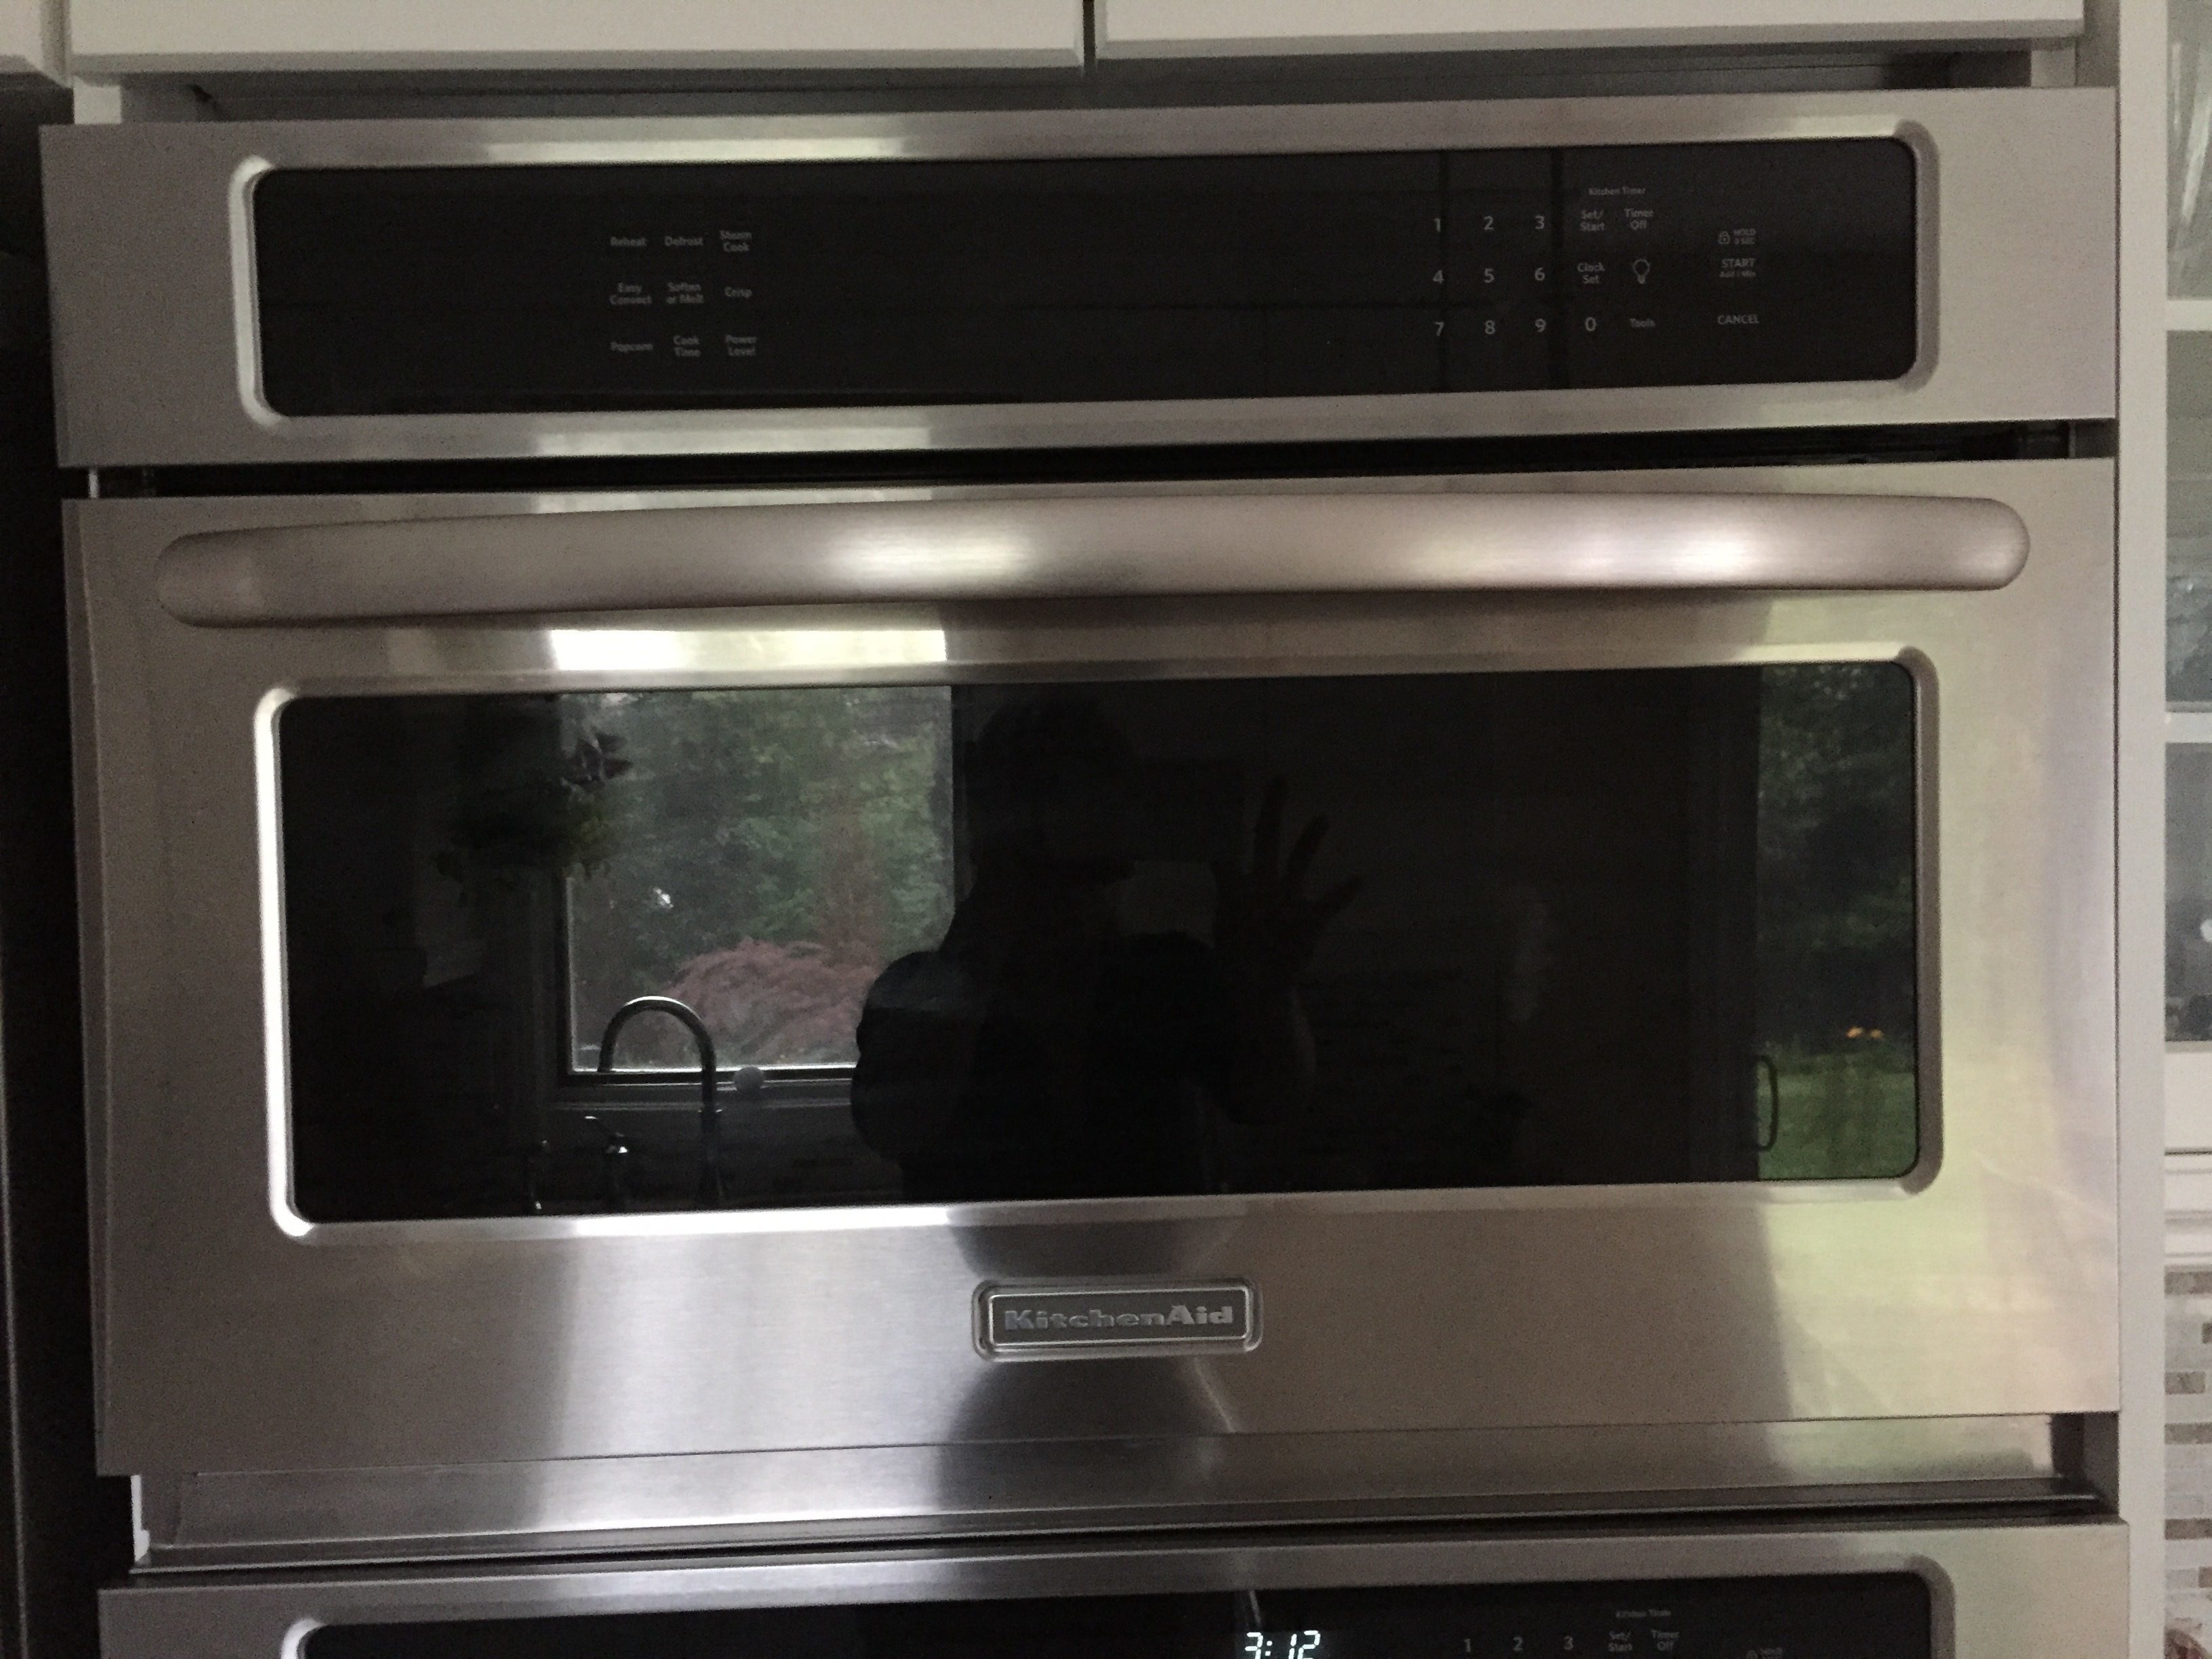 Top 216 complaints and reviews about kitchenaid microwave - Kitchenaid microwave ...